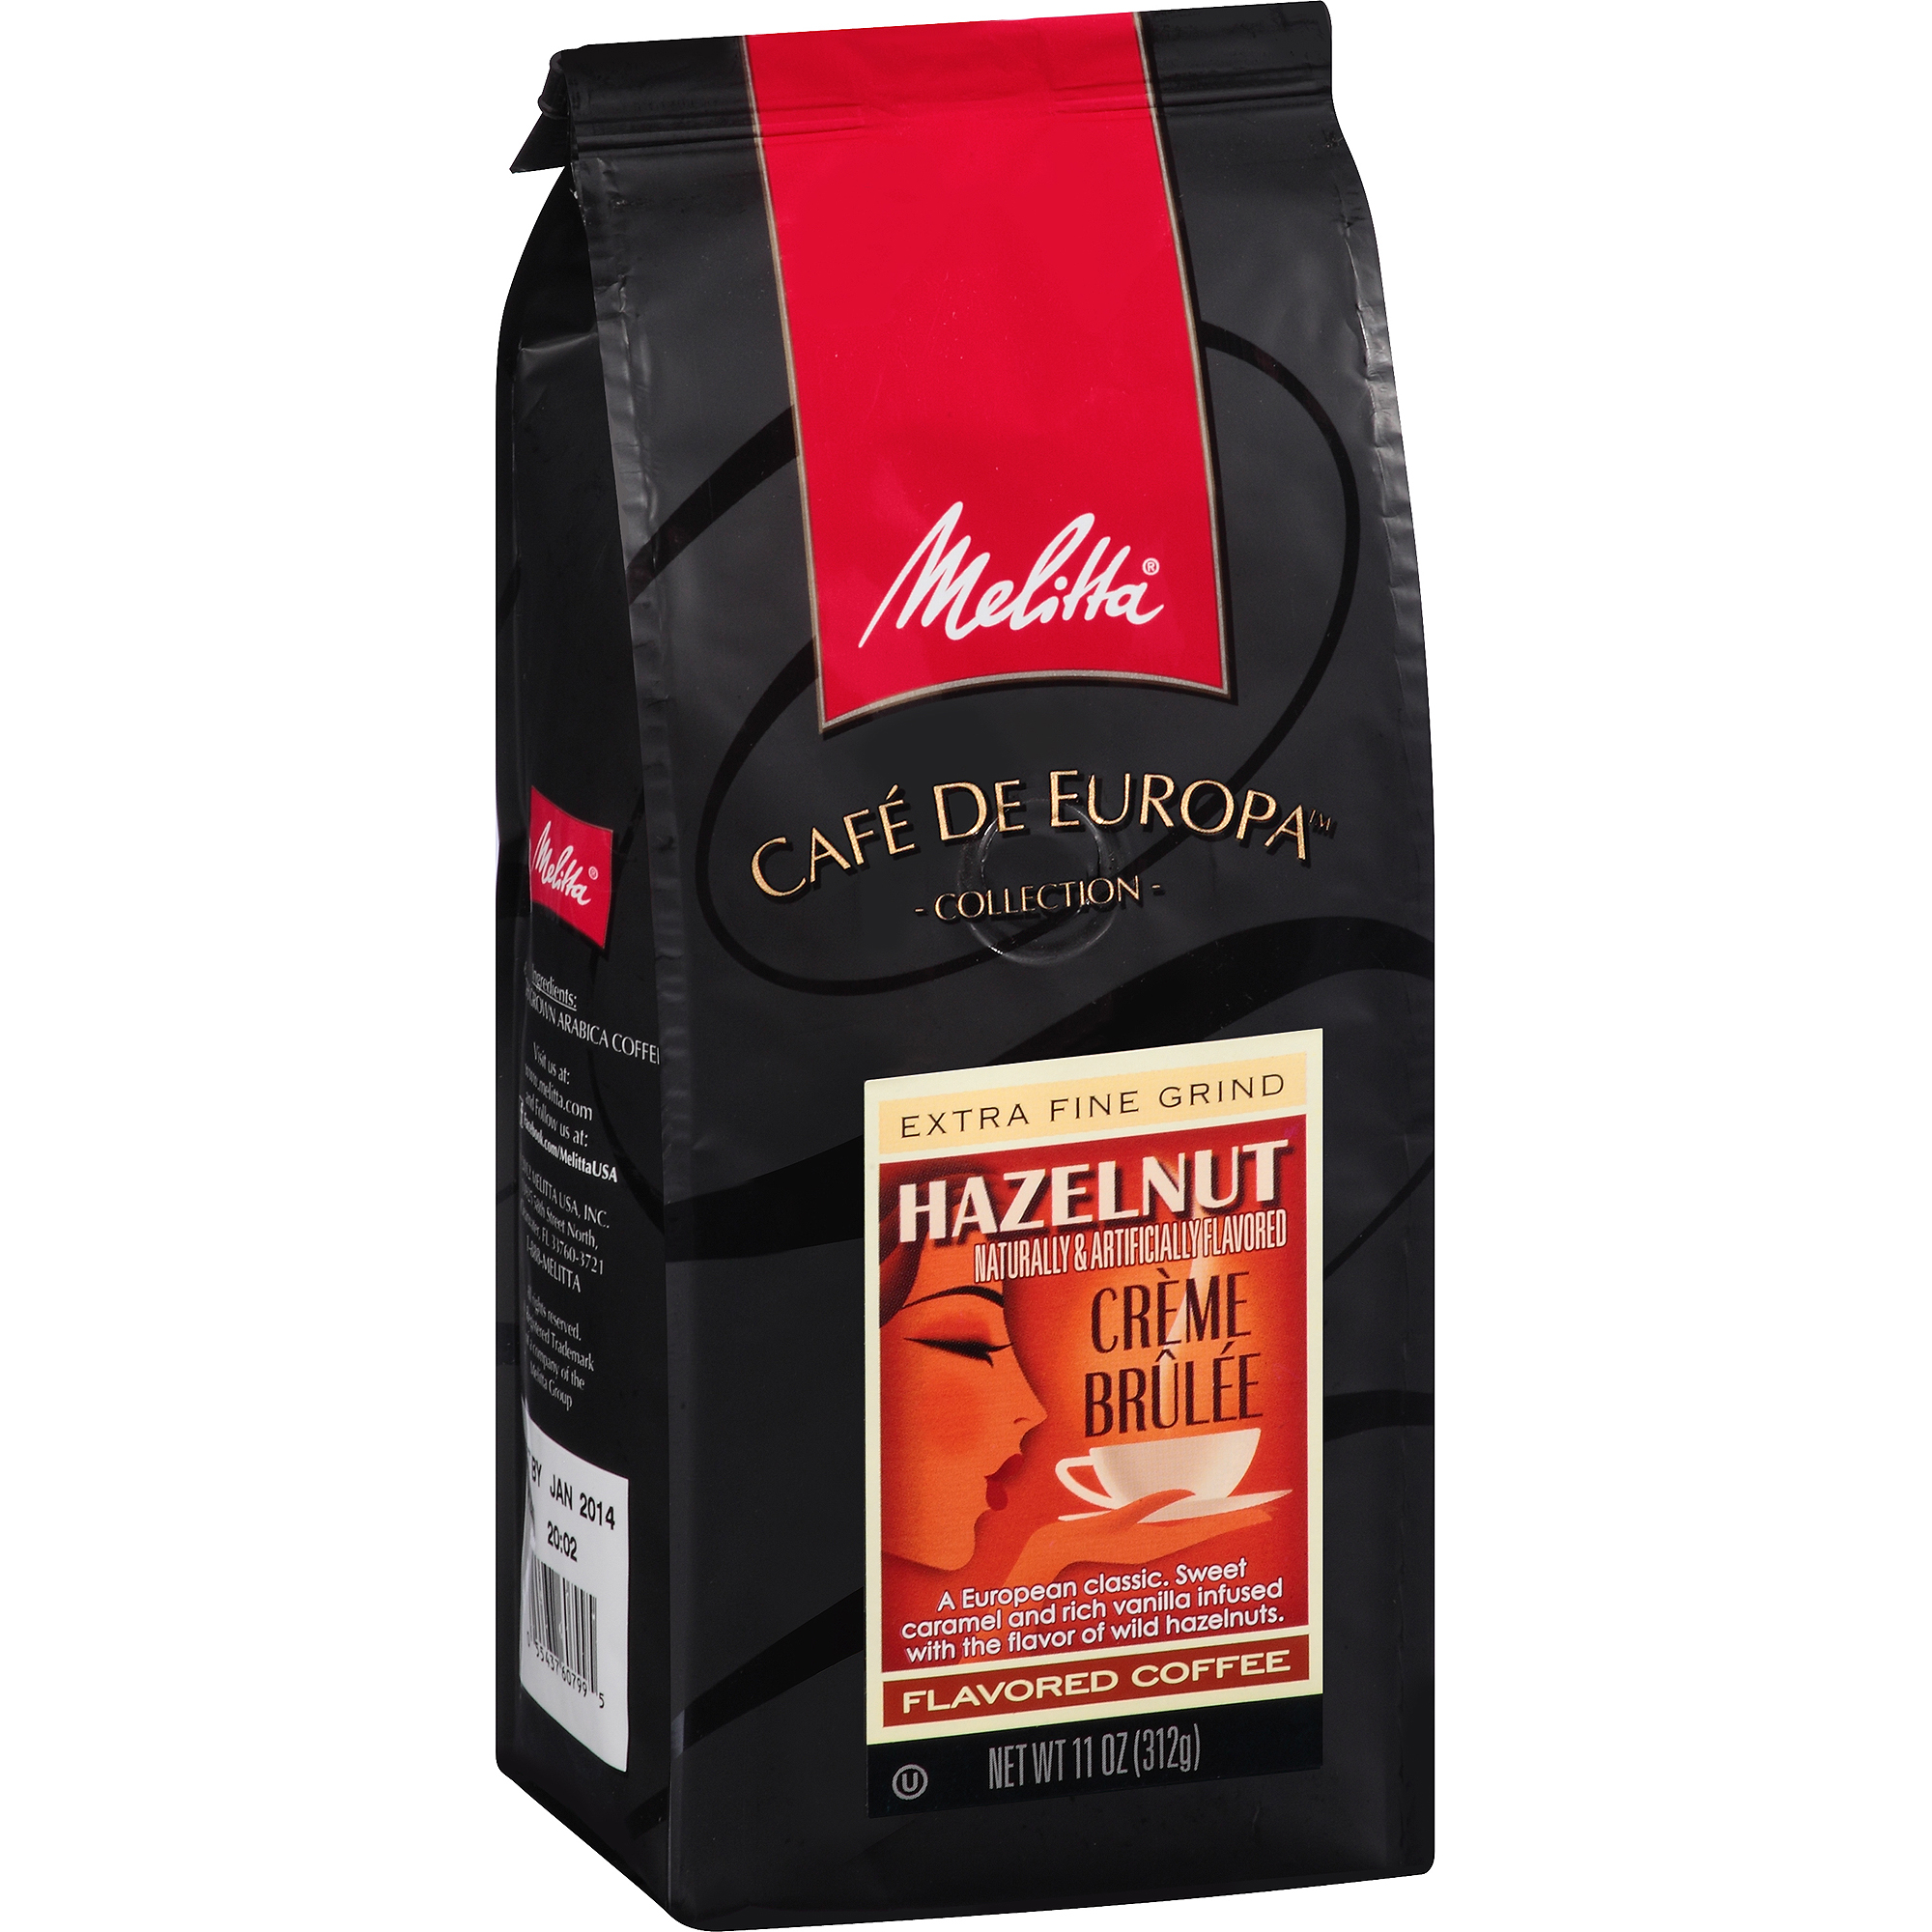 Melitta Cafe de Europa Medium Roast Hazelnut Creme Brulee Gourmet Coffee, 11 oz